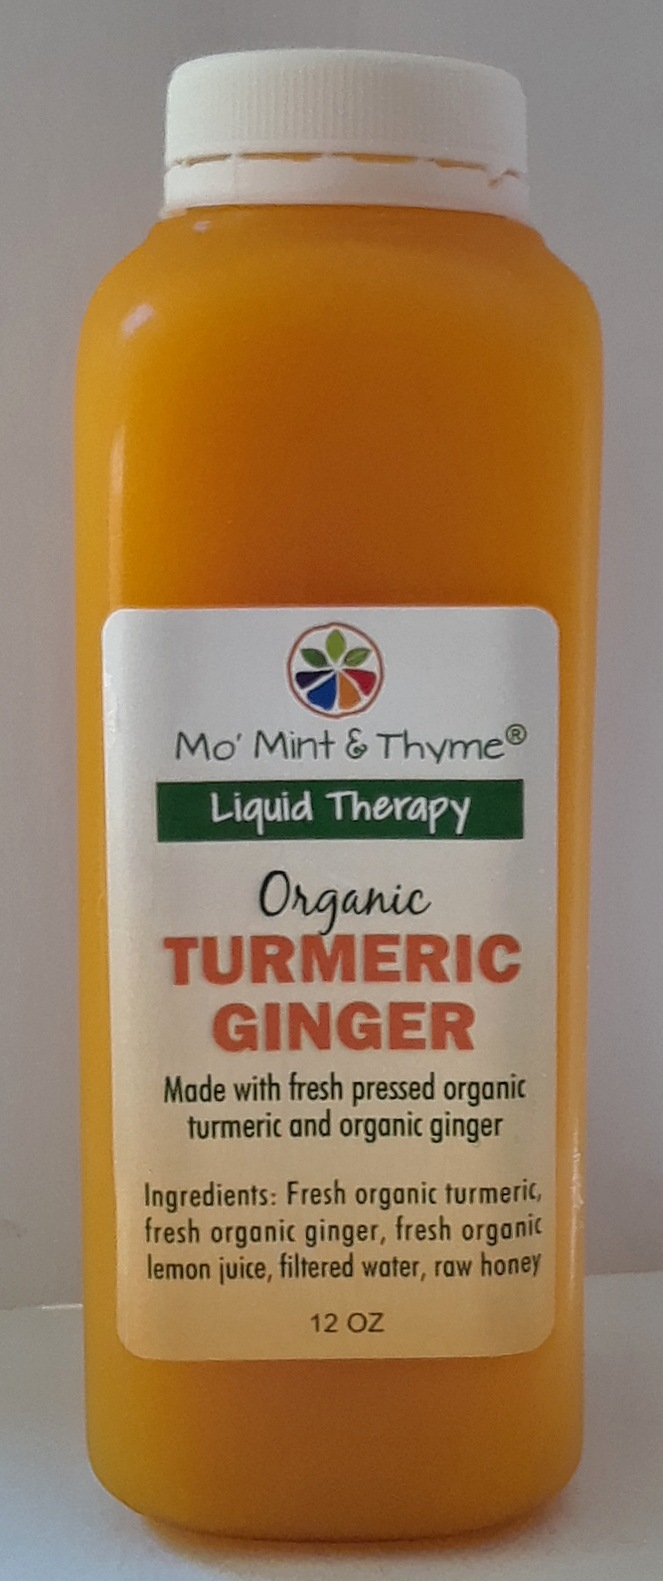 Turmeric Ginger - 12 oz